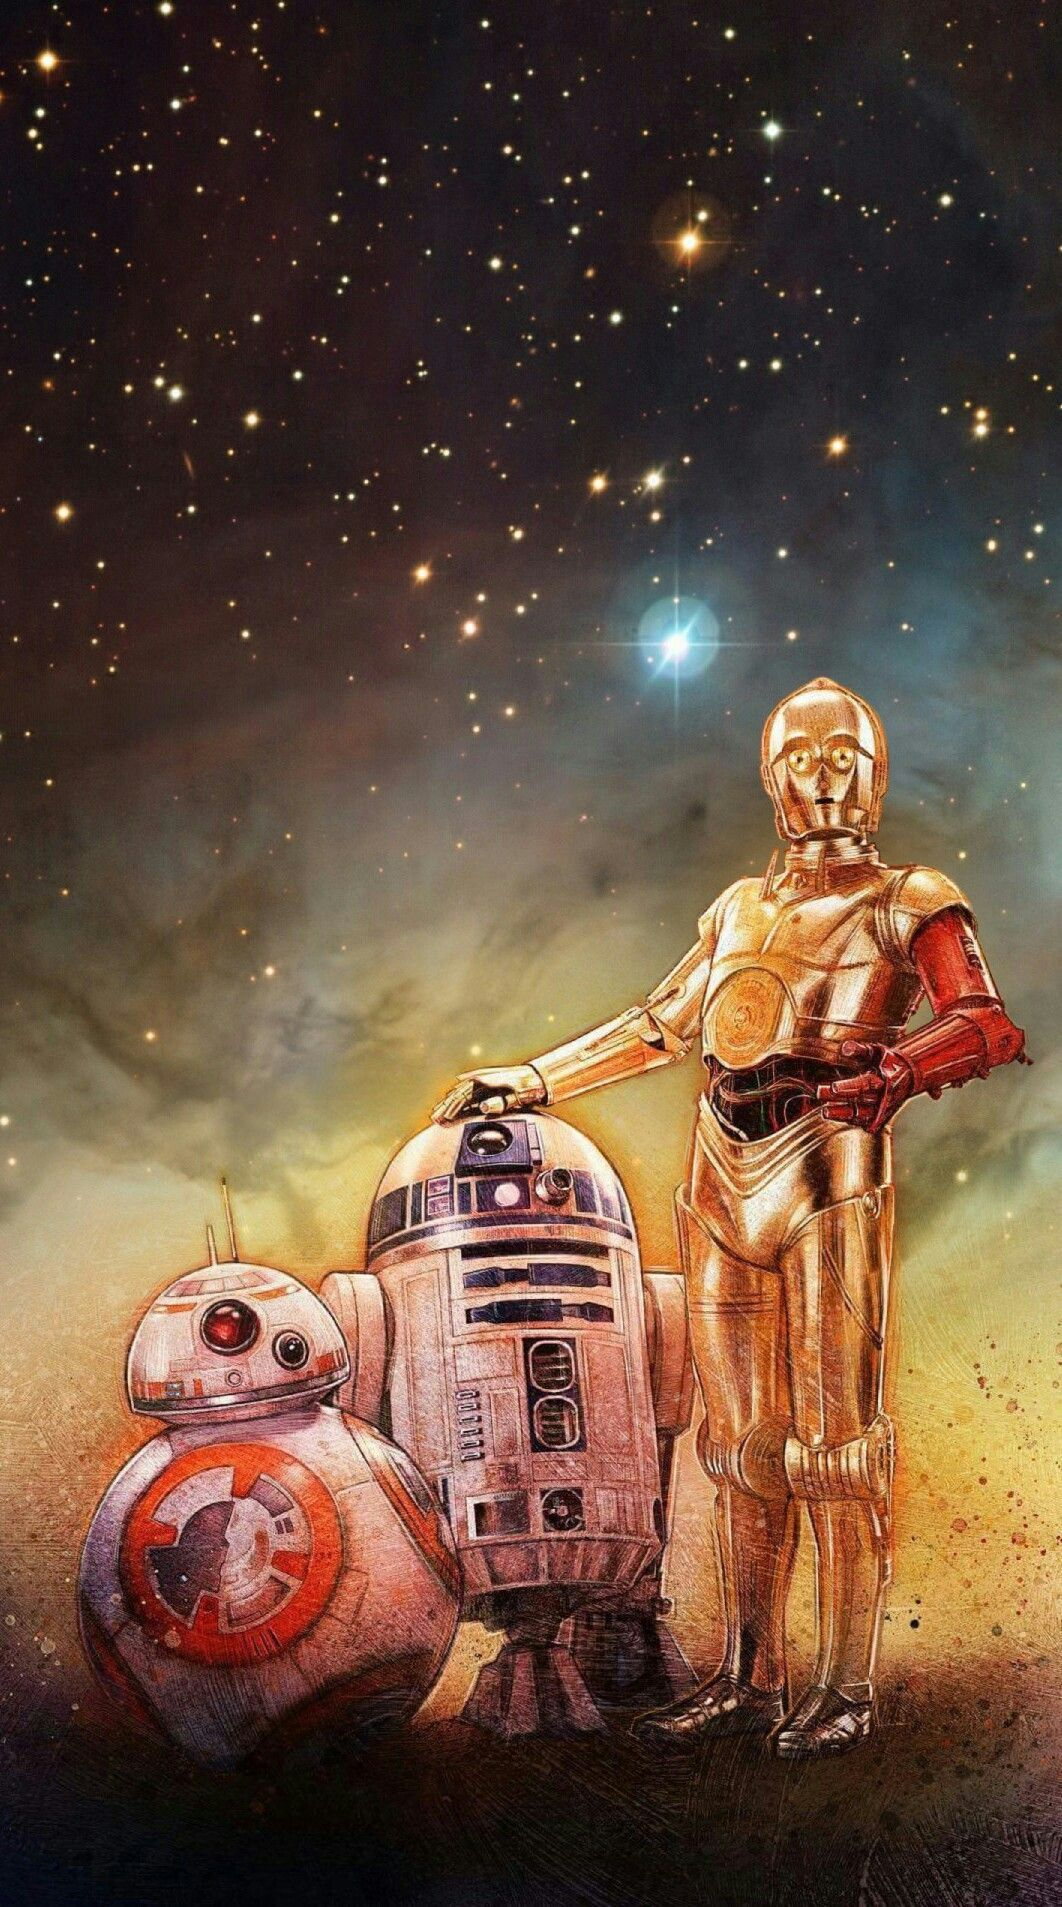 Star Wars Droid Wallpapers Top Free Star Wars Droid Backgrounds Wallpaperaccess